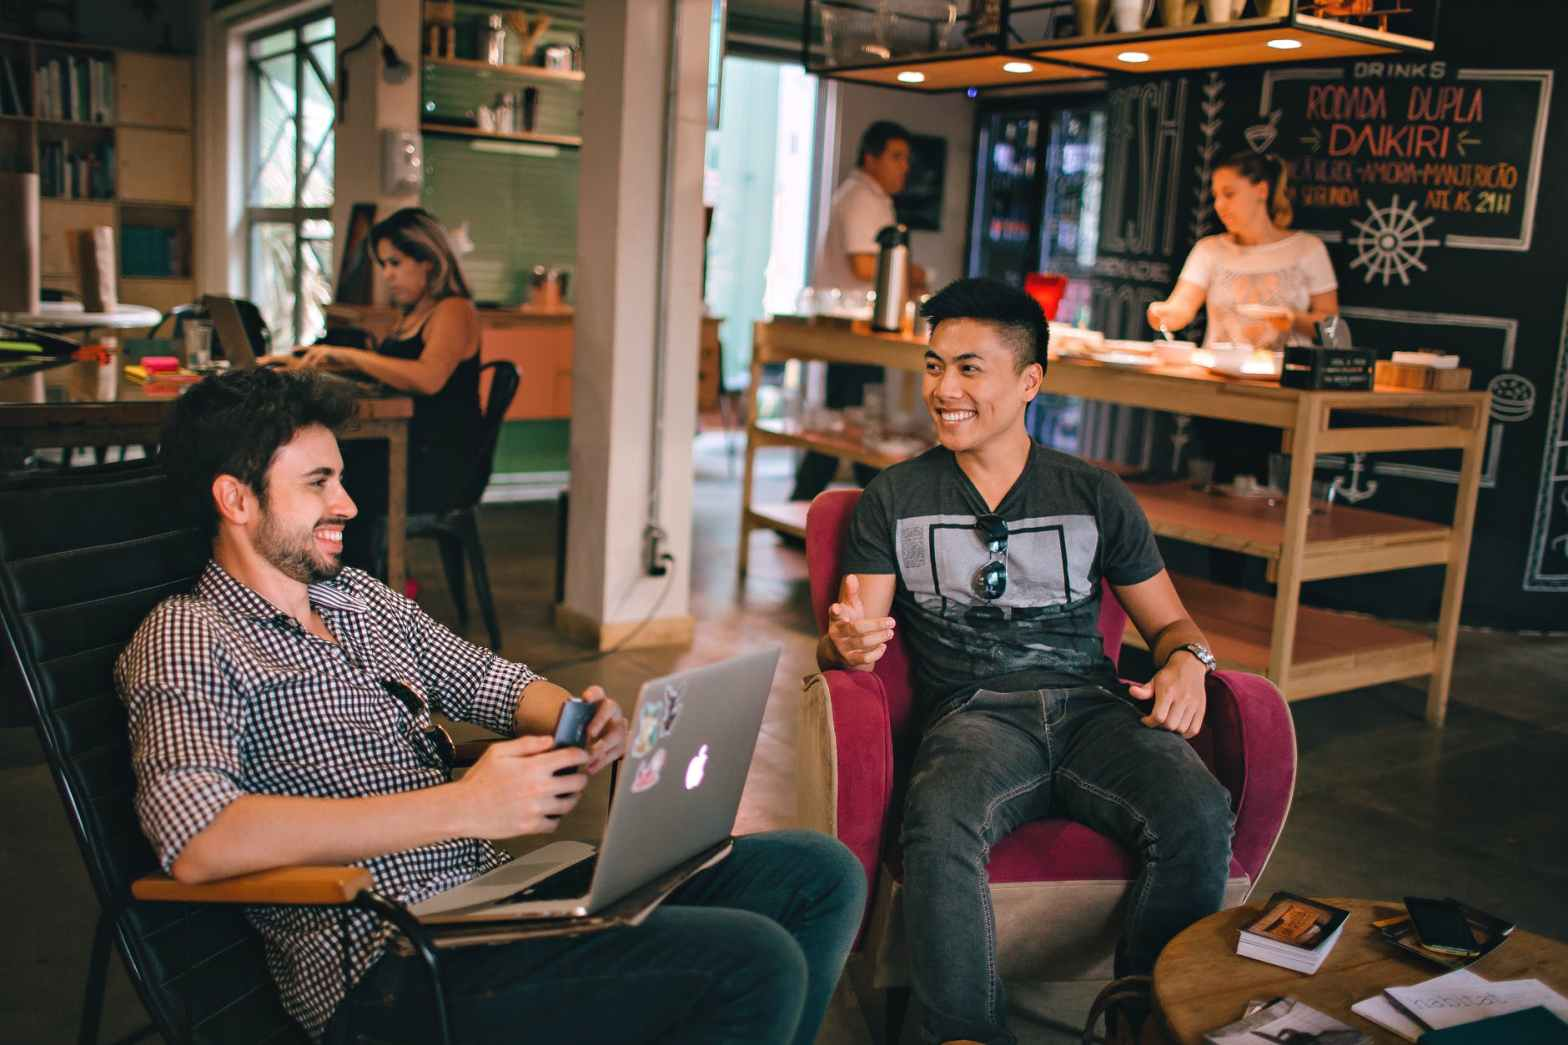 photograph of men having conversation seating on chair